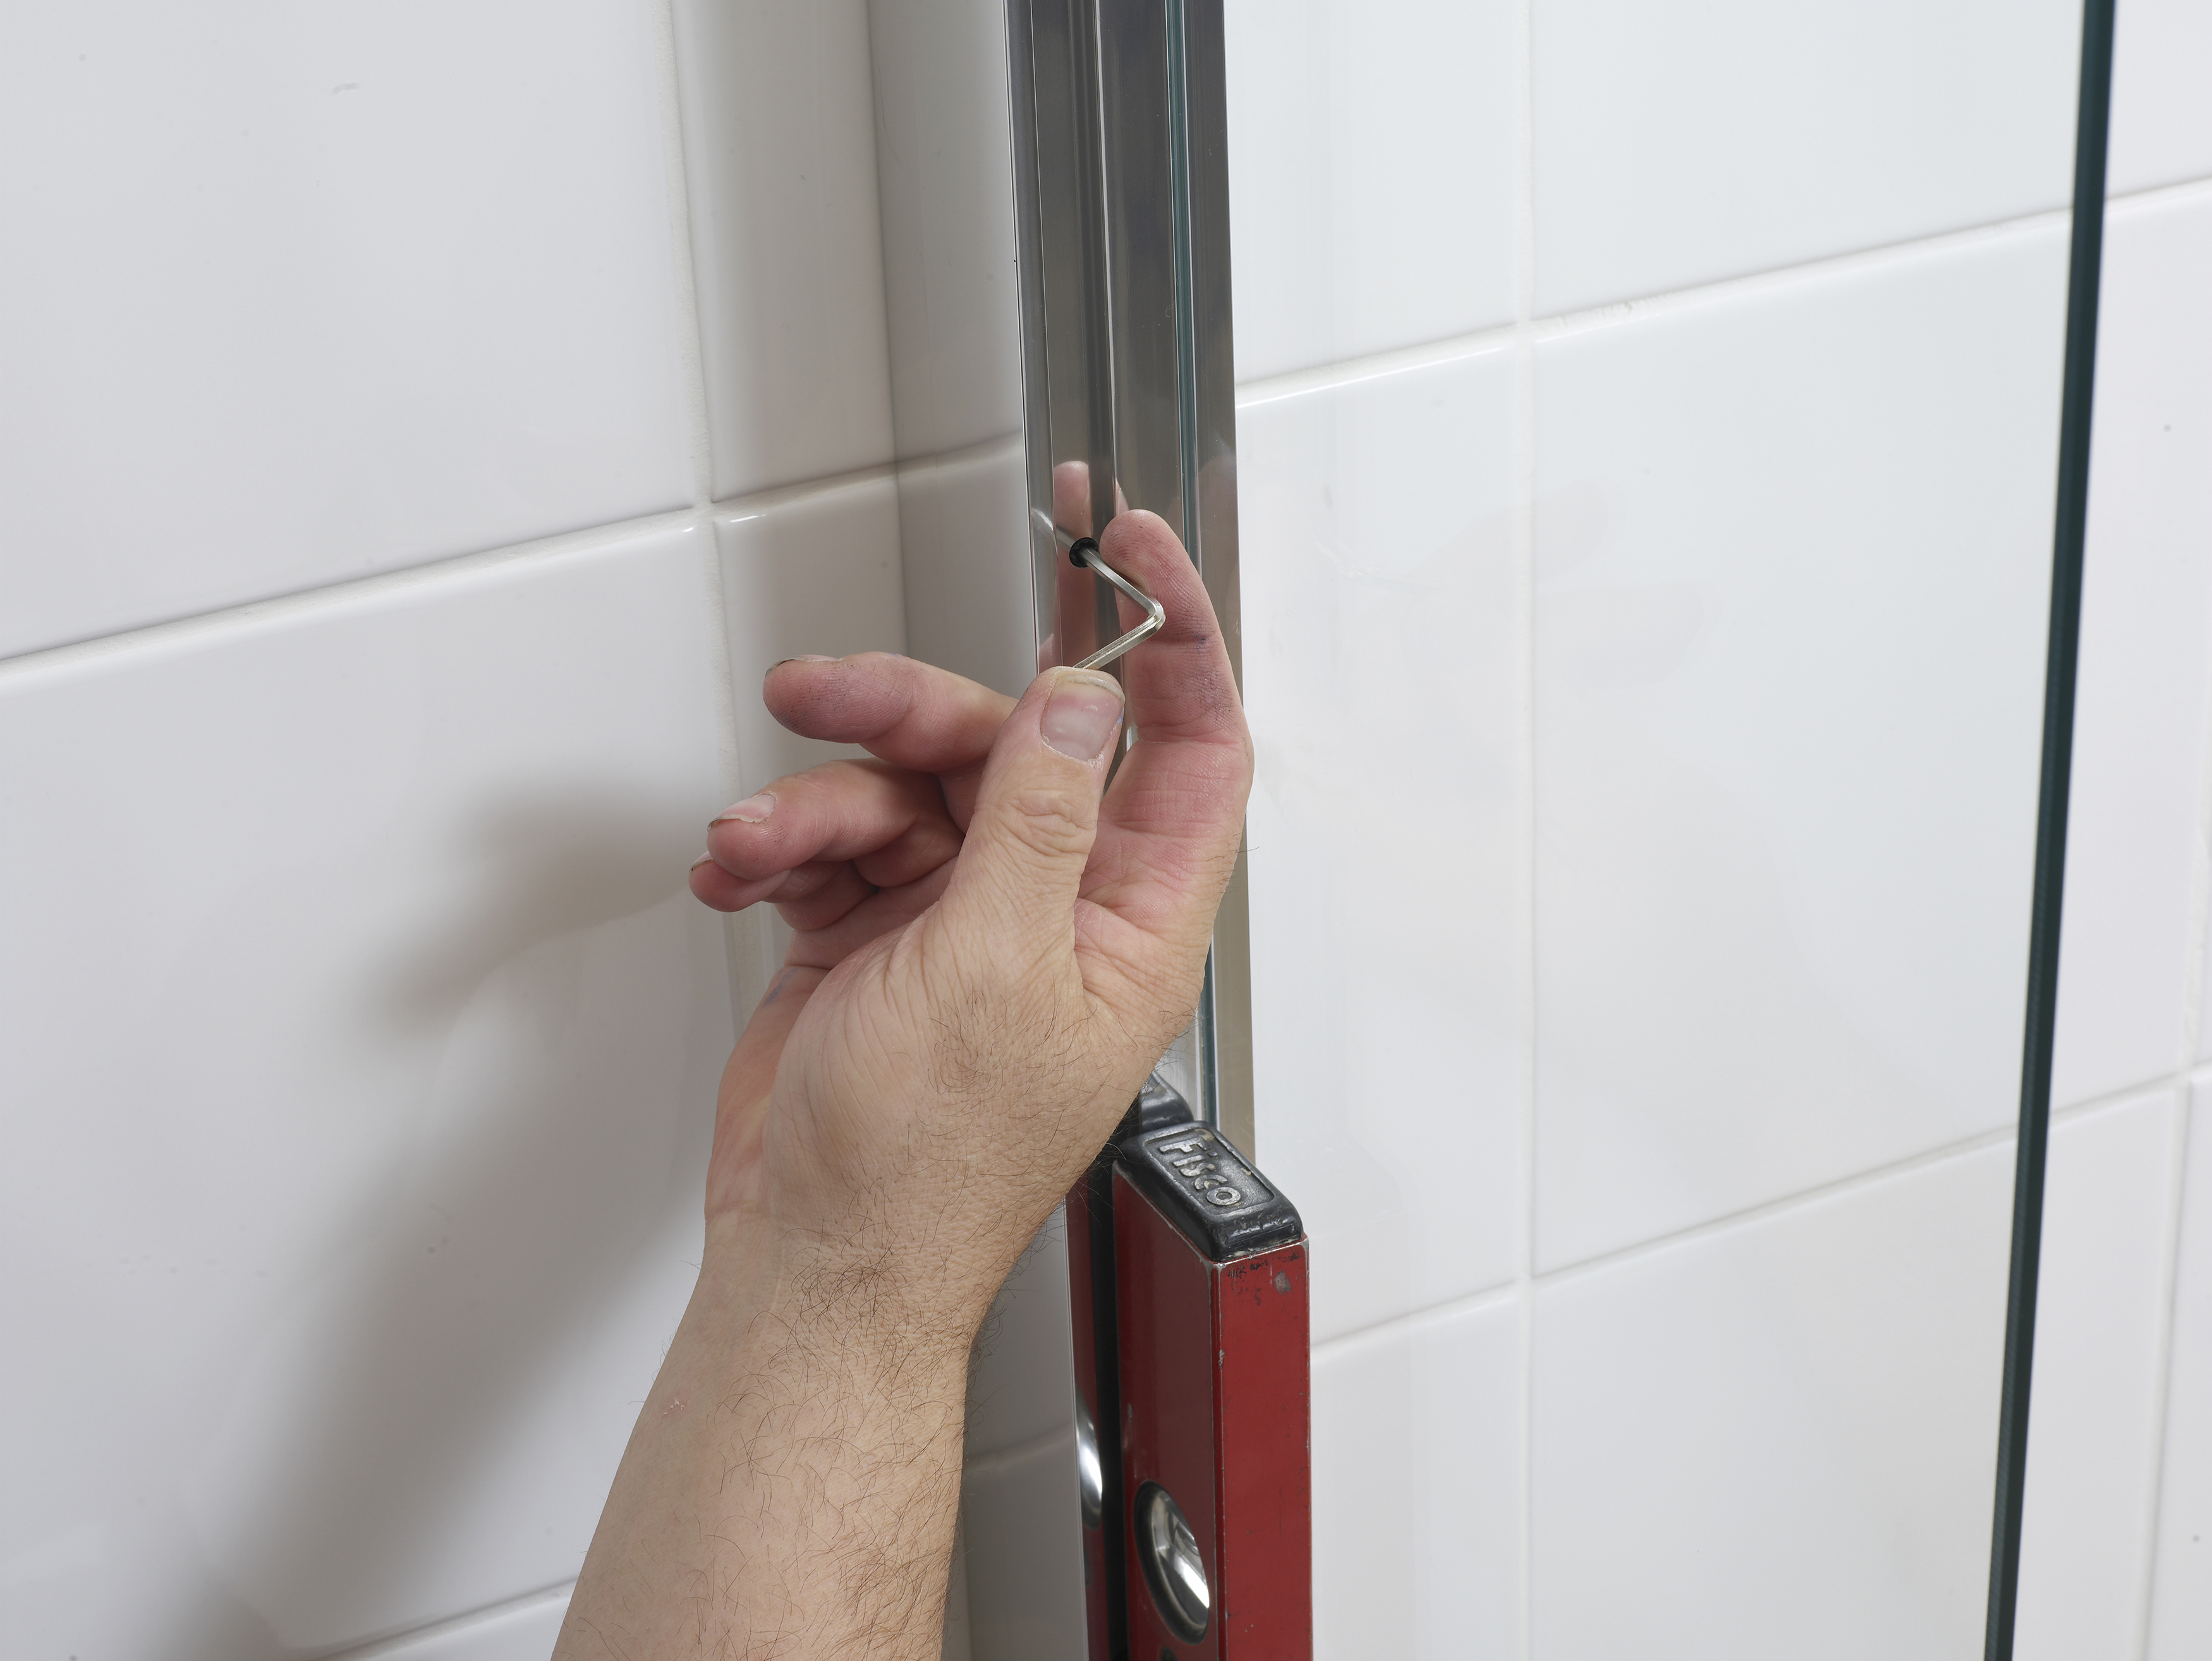 Use the 3mm Allen key to lock the quad frame into both wall channels